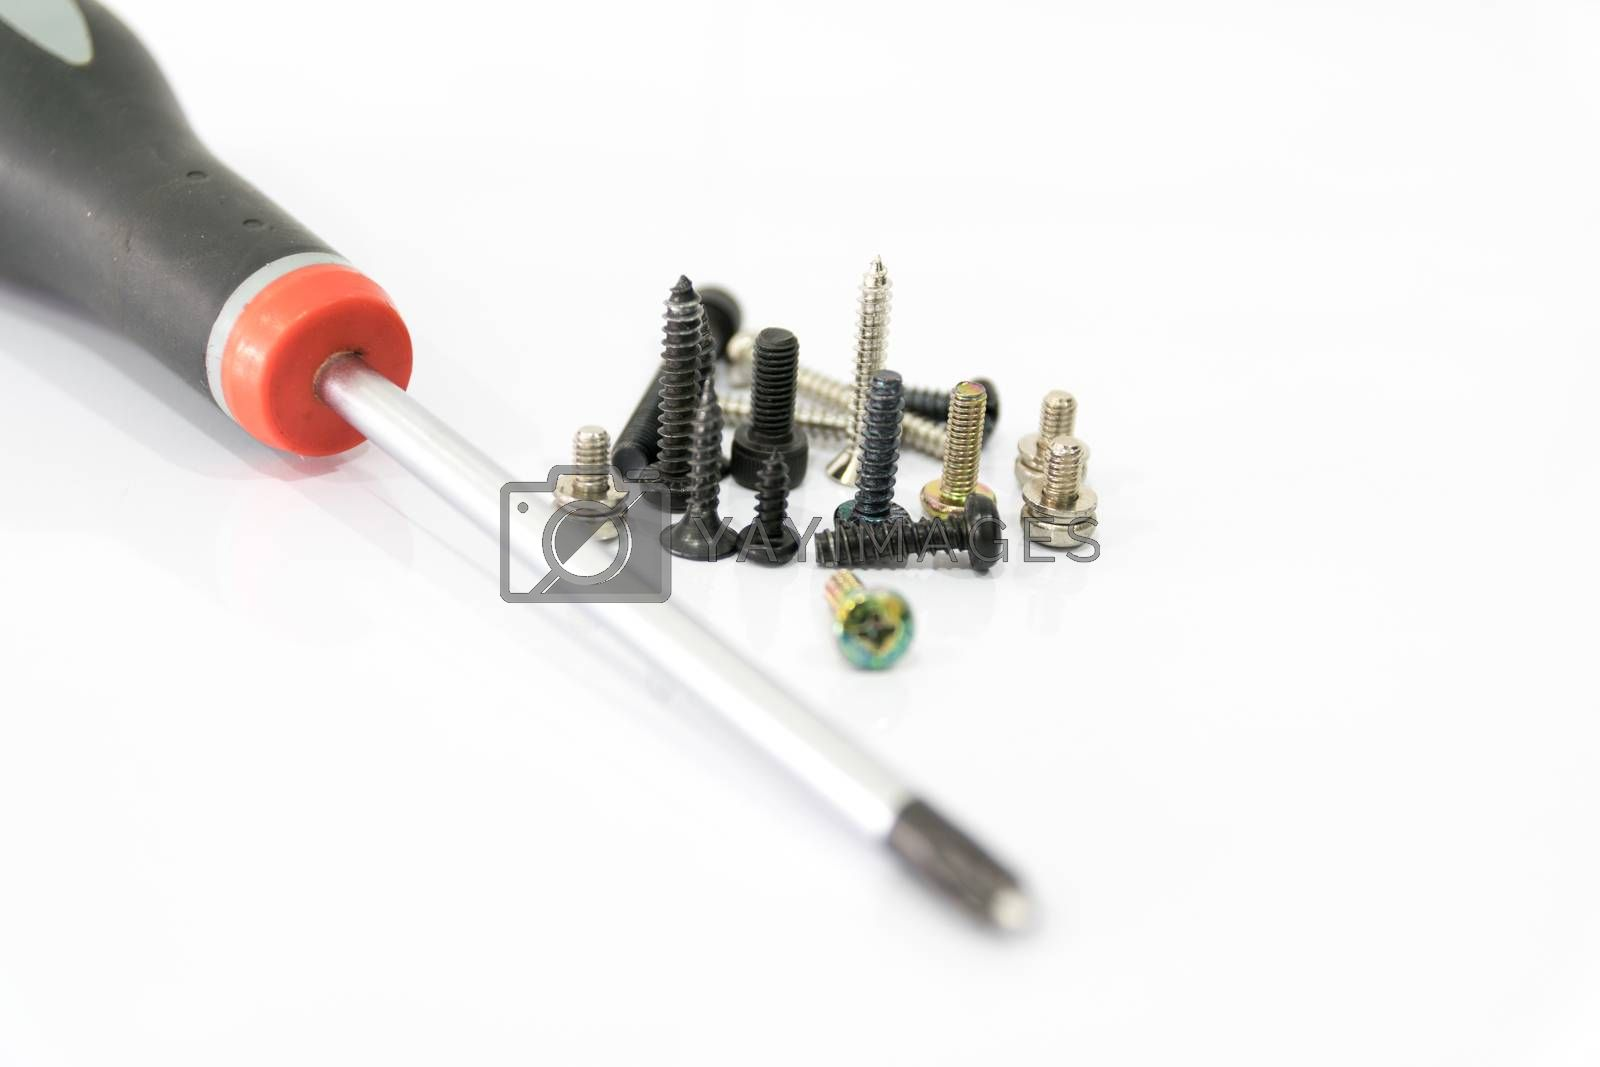 Machine screws very important for mounting components.